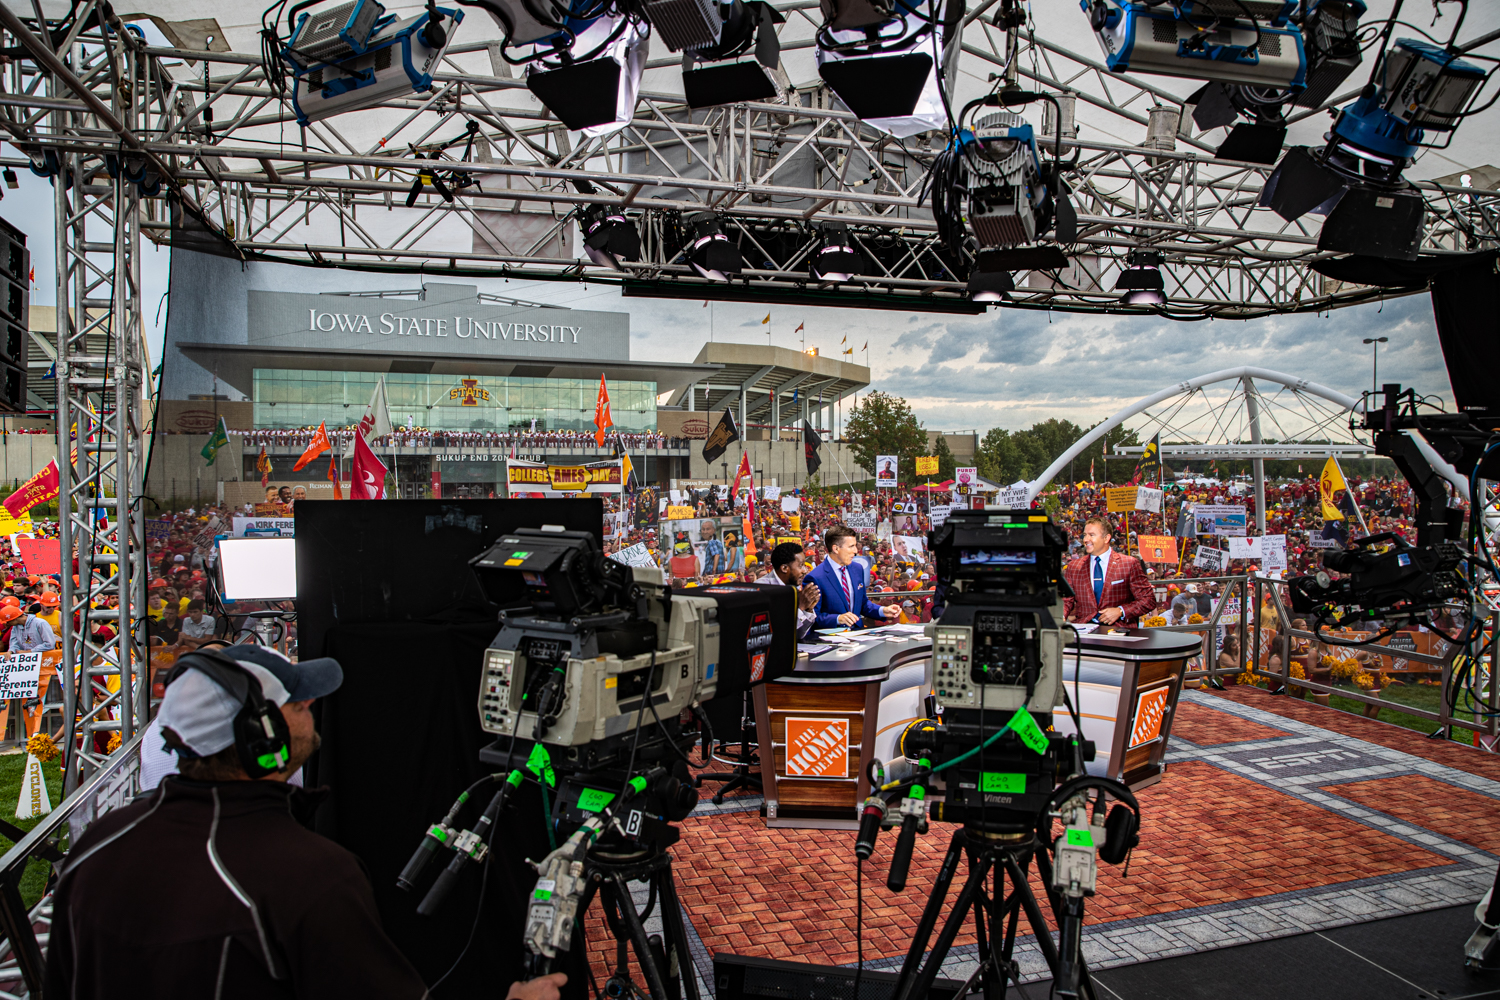 Anchors host during ESPN College GameDay before the annual Cy-Hawk football game between Iowa and Iowa State in Ames on Saturday, Sept. 14, 2019. This was GameDay's first visit to Ames.